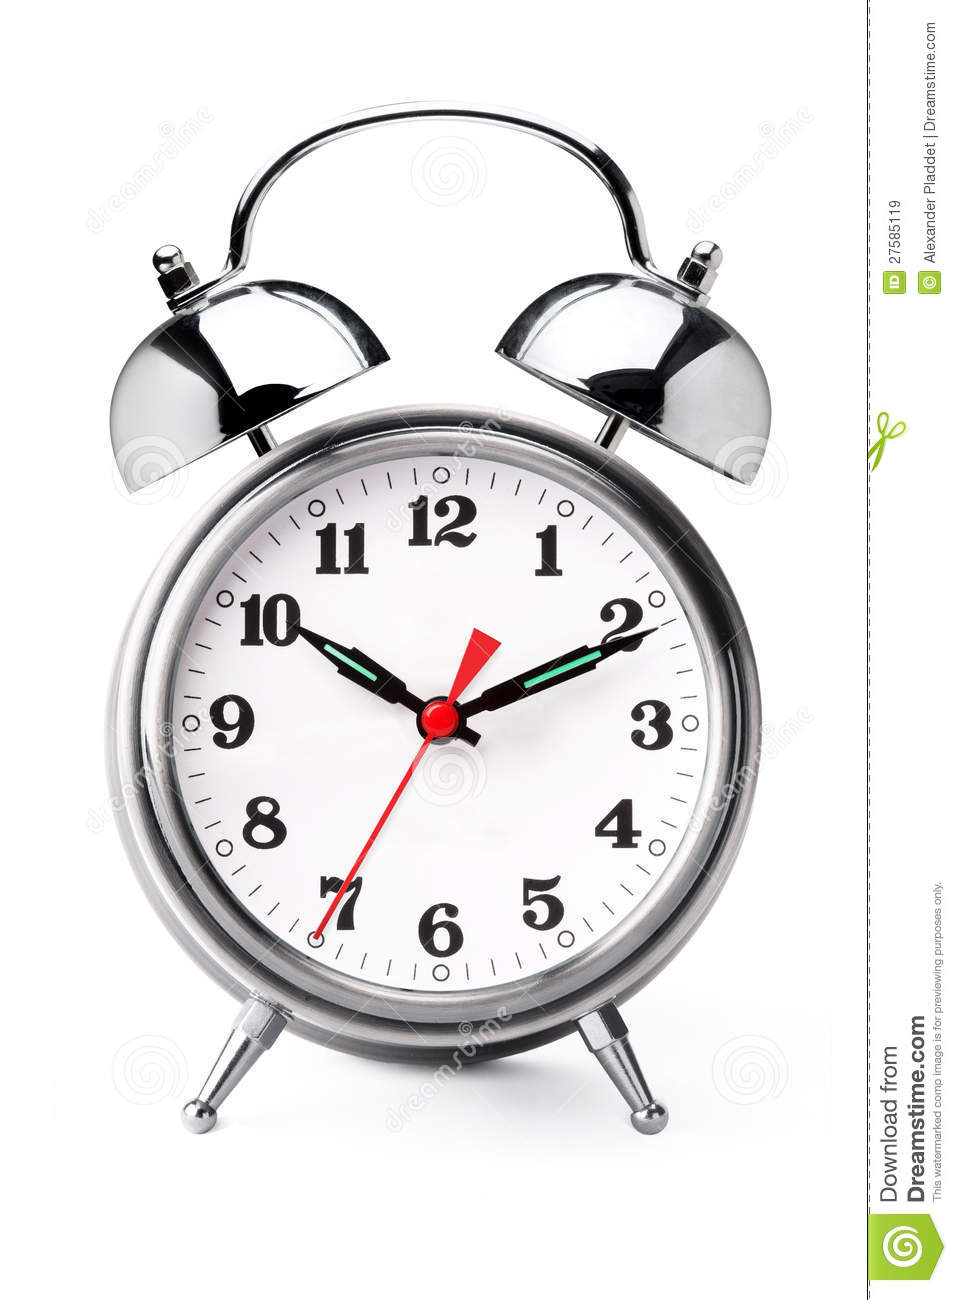 Alarm Clock Royalty Free Stock Images - Image: 27585119 Blank Alarm Clock Clipart